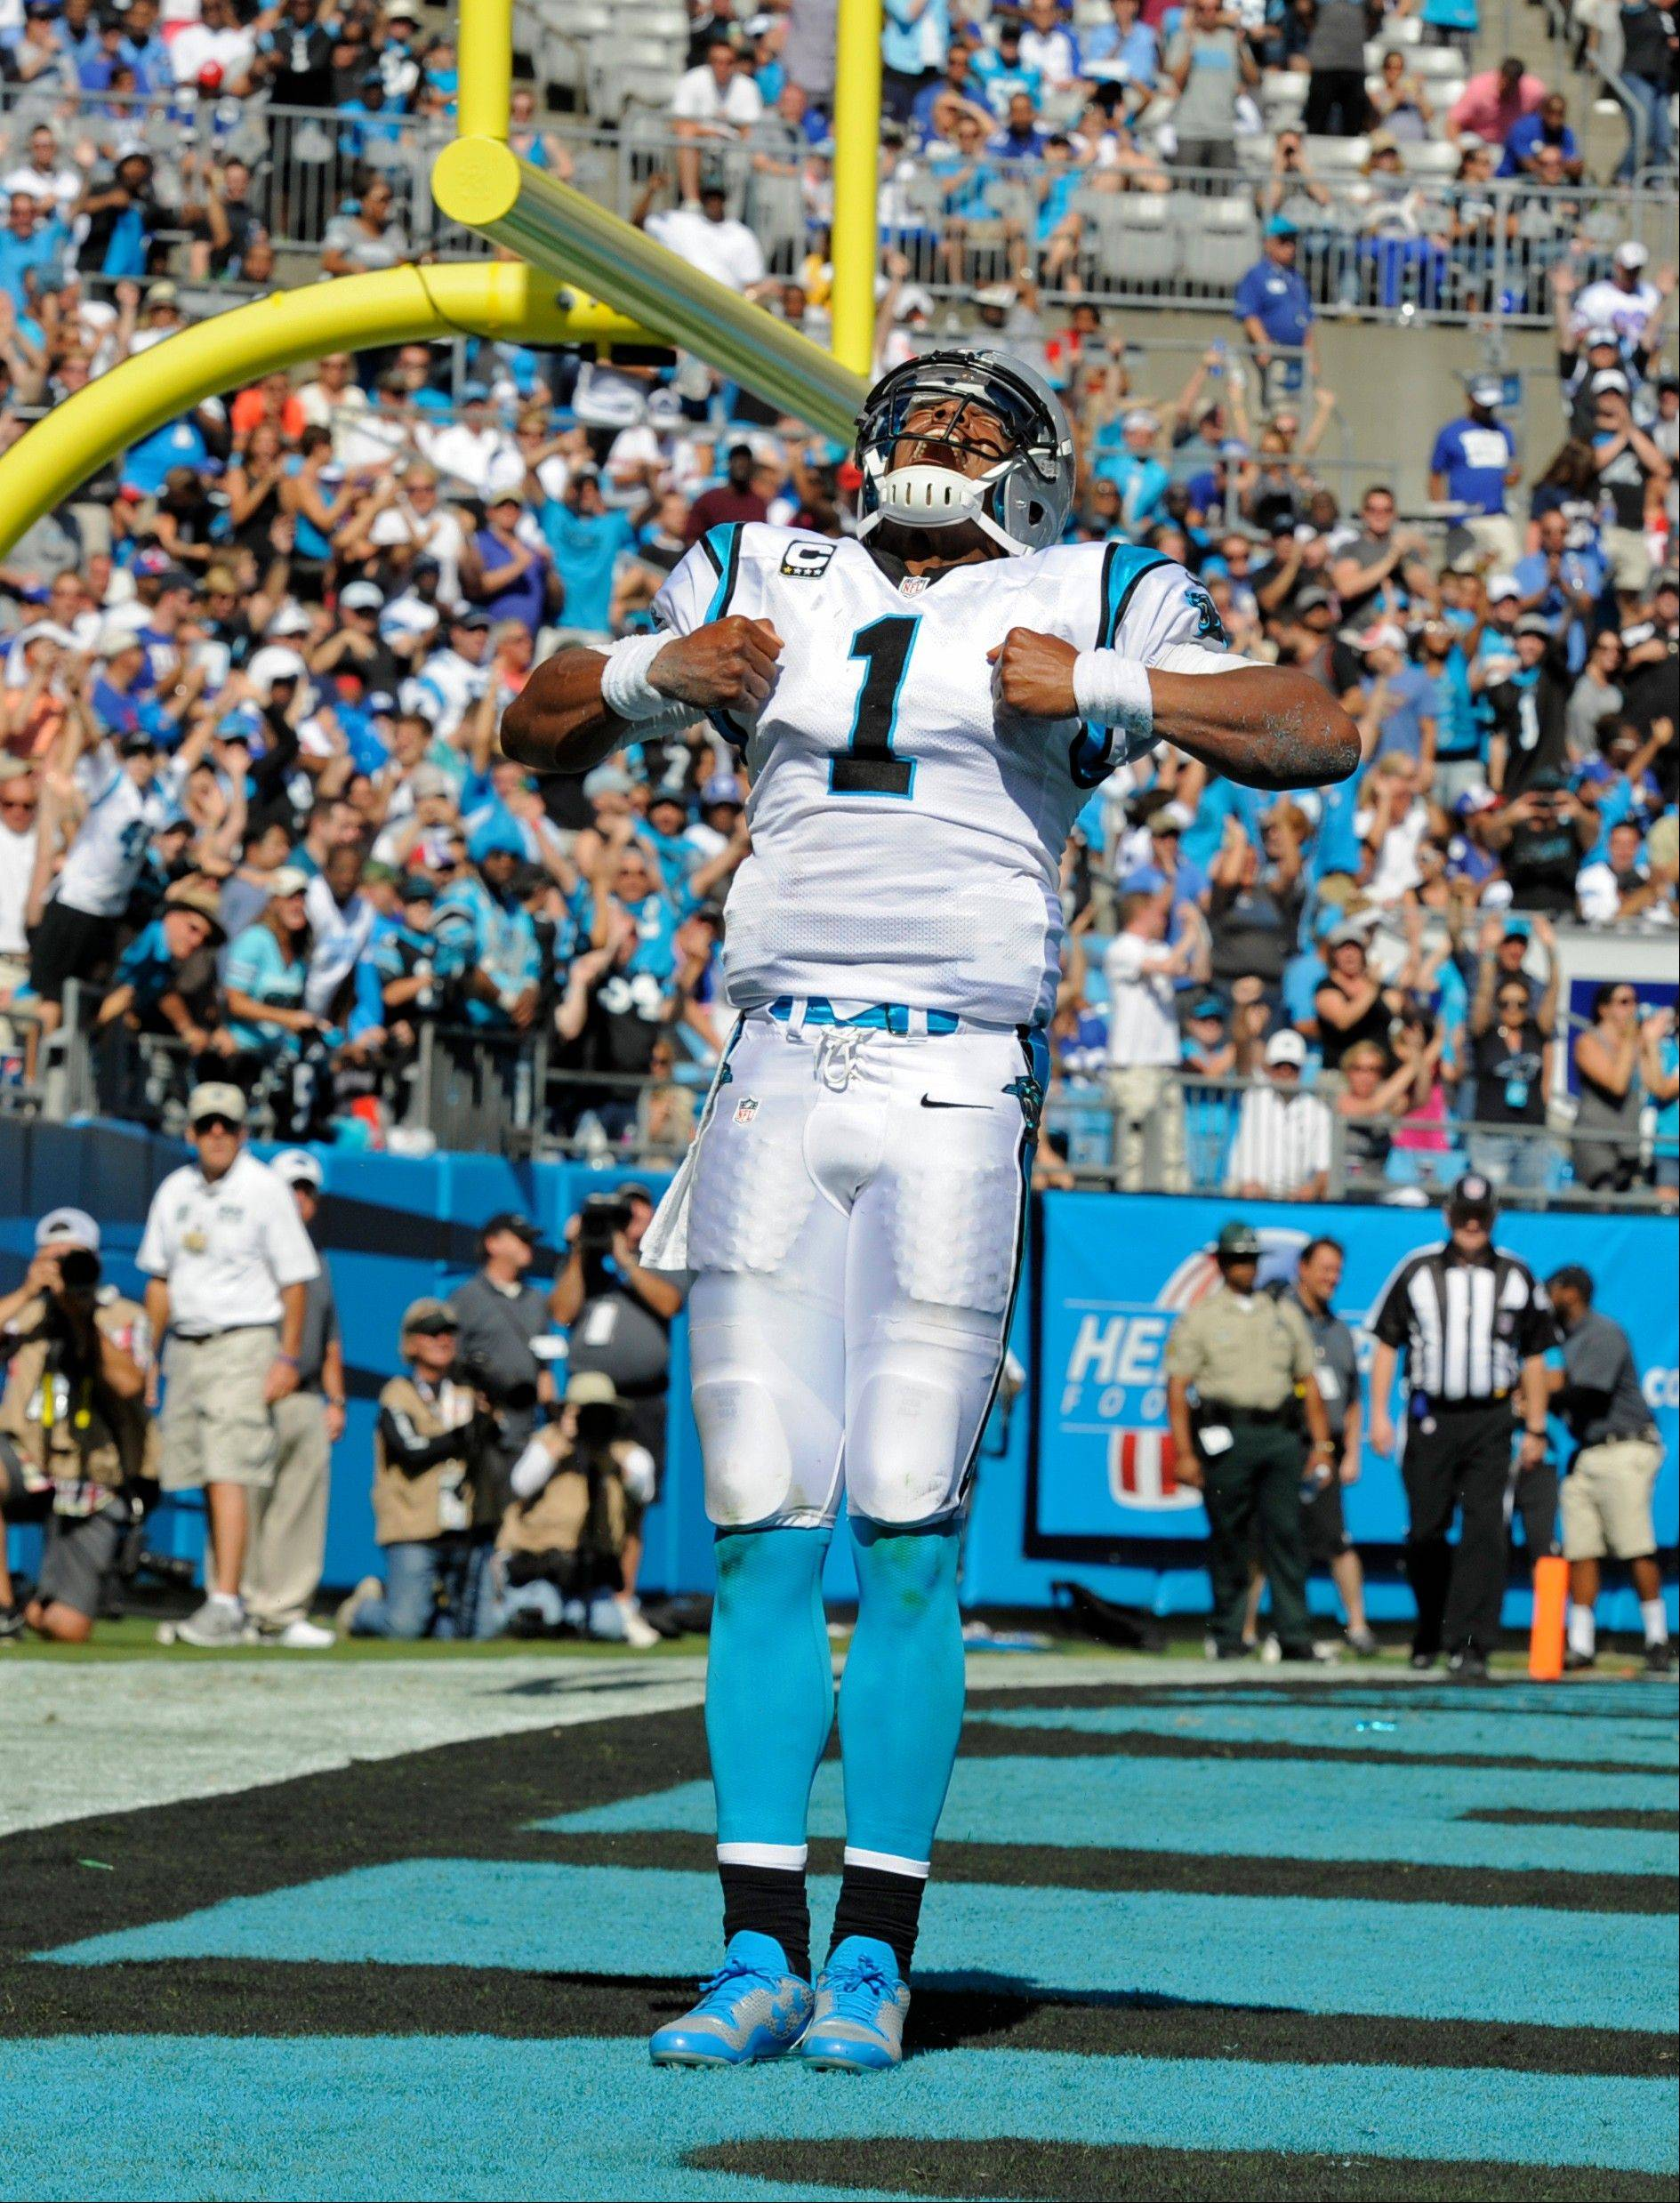 Carolina Panthers� Cam Newton (1) celebrates his touchdown run against the New York Giants during the second half of an NFL football game in Charlotte, N.C., Sunday, Sept. 22, 2013.